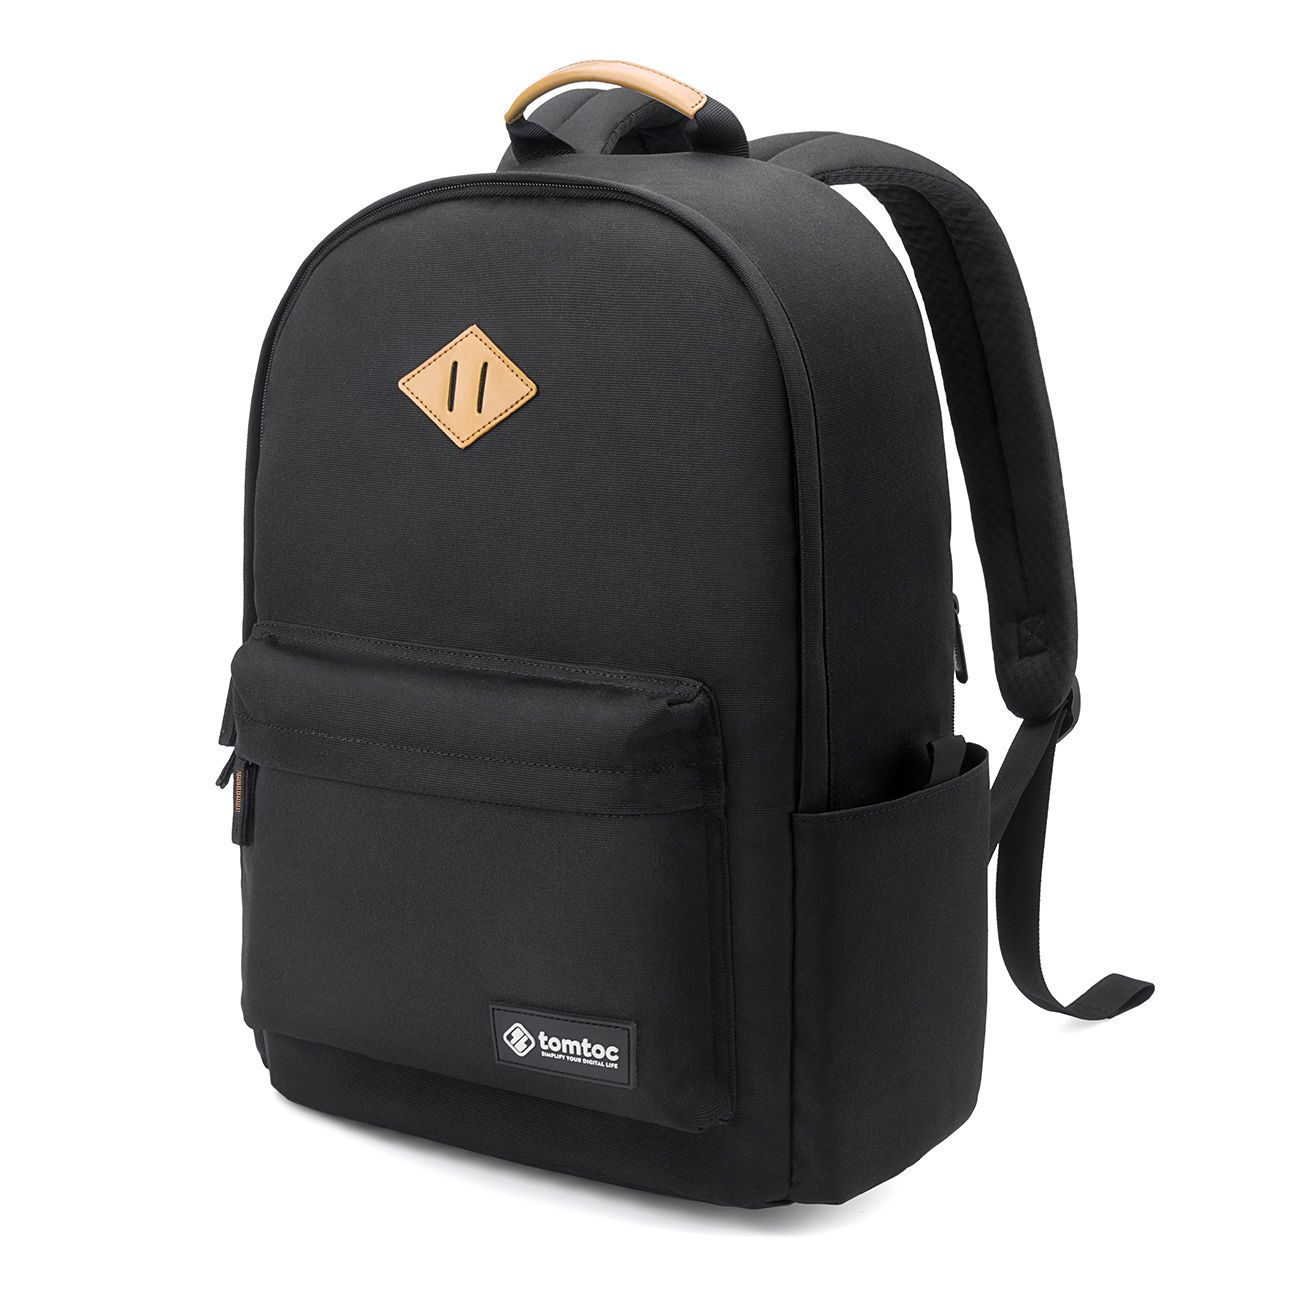 College Backpack Tomtoc 15.6 Inch Laptop Backpack Computer Bag Daypack